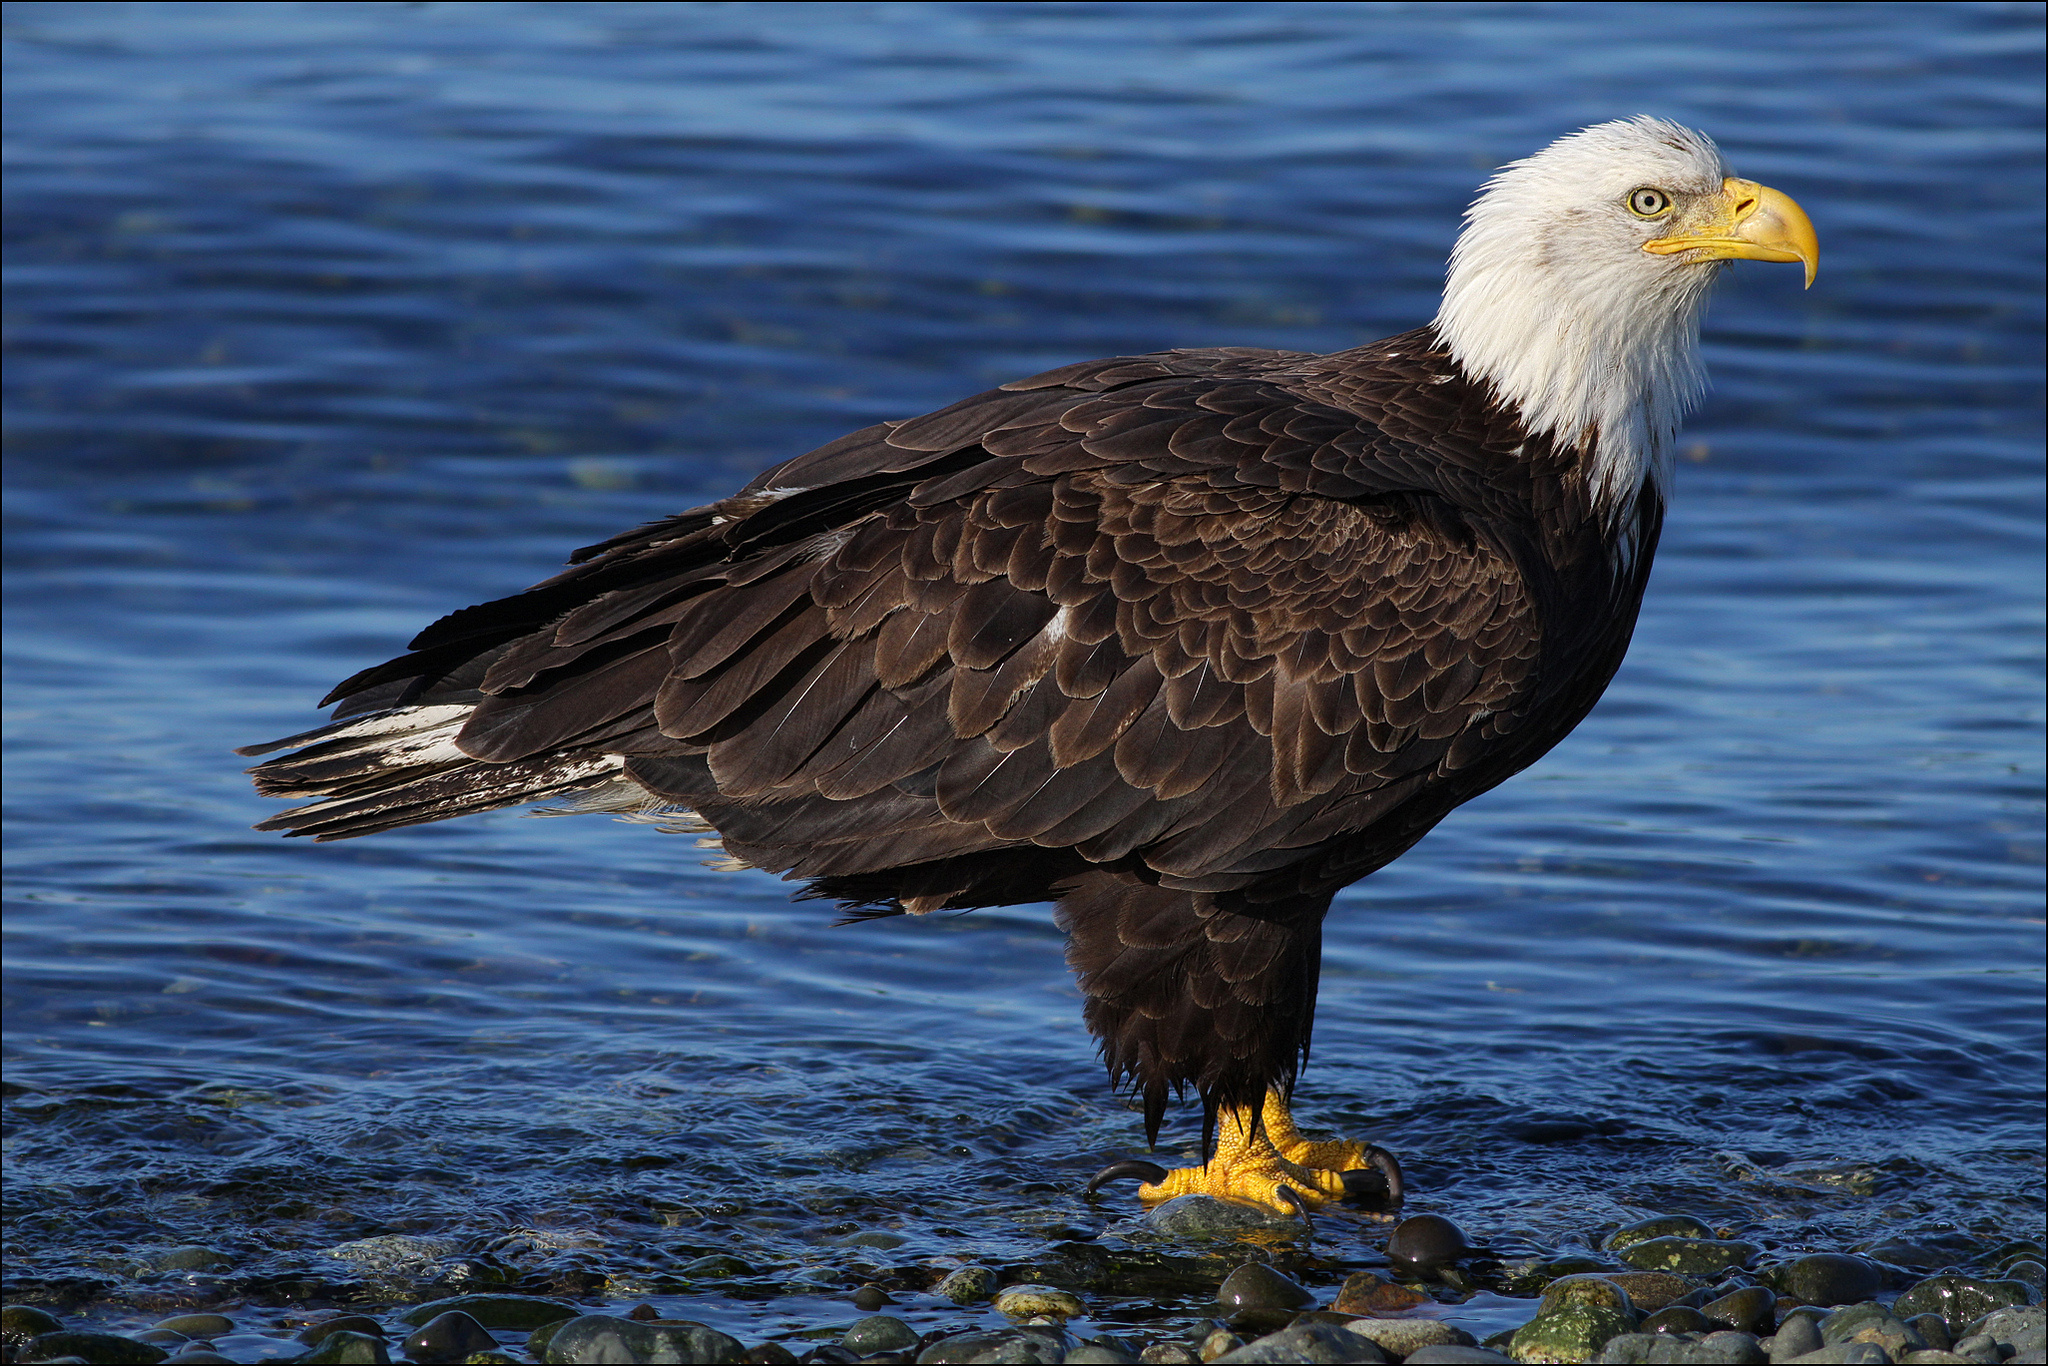 essay bird eagle The tawny eagle aquila rapax is a large bird of prey like all eagles, it belongs to the family accipitridae it was once considered to be closely related.